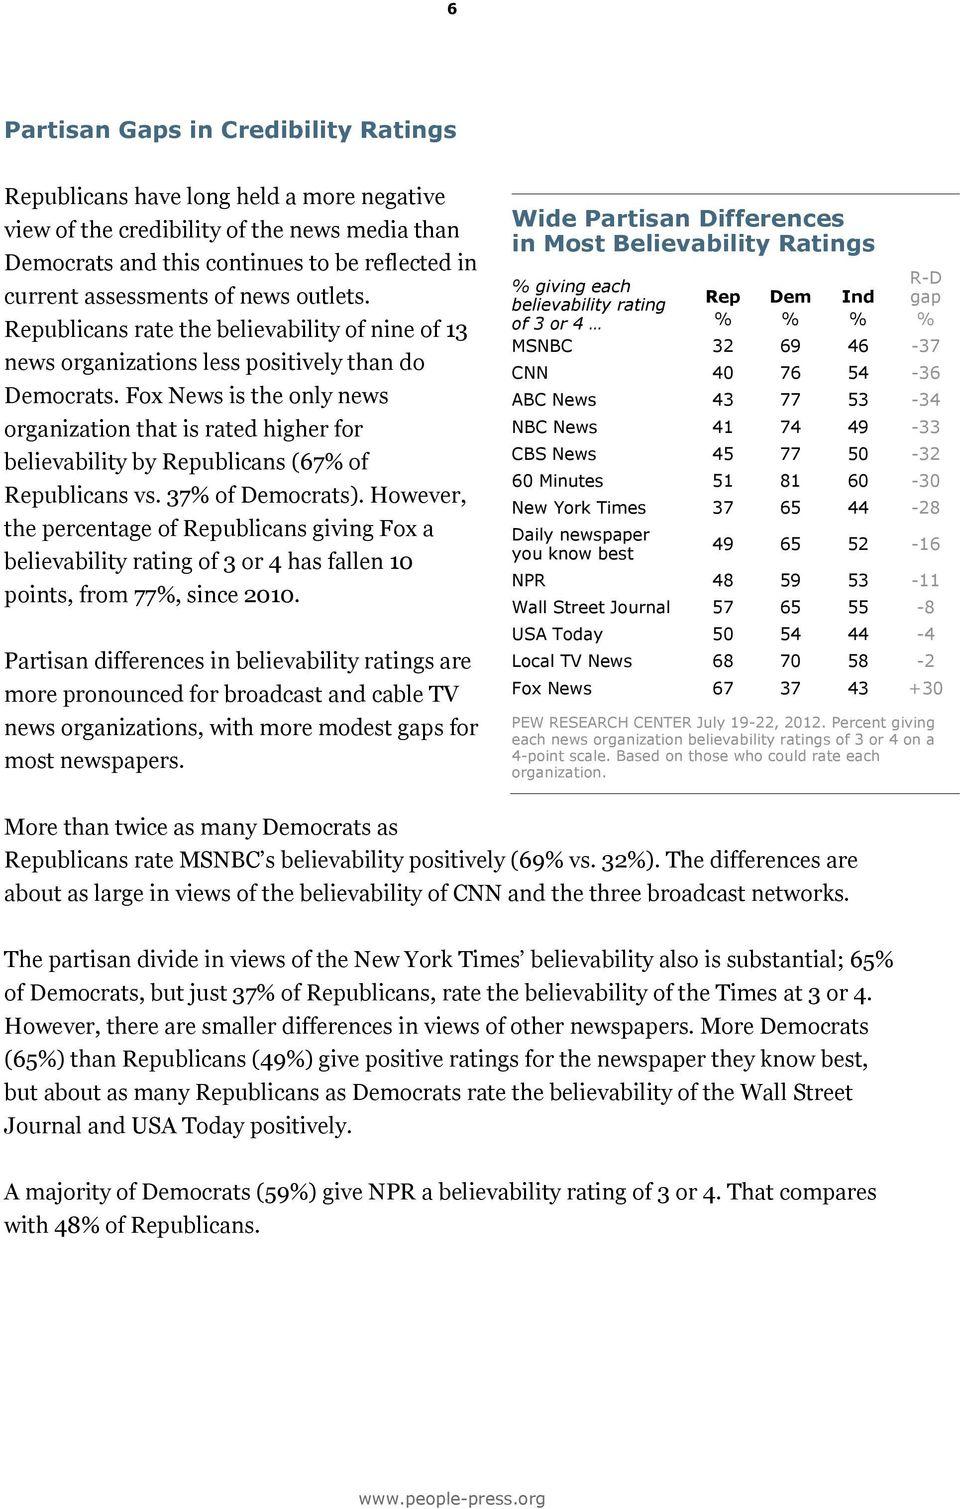 Fox News is the only news organization that is rated higher for believability by Republicans (67% of Republicans vs. 37% of Democrats).